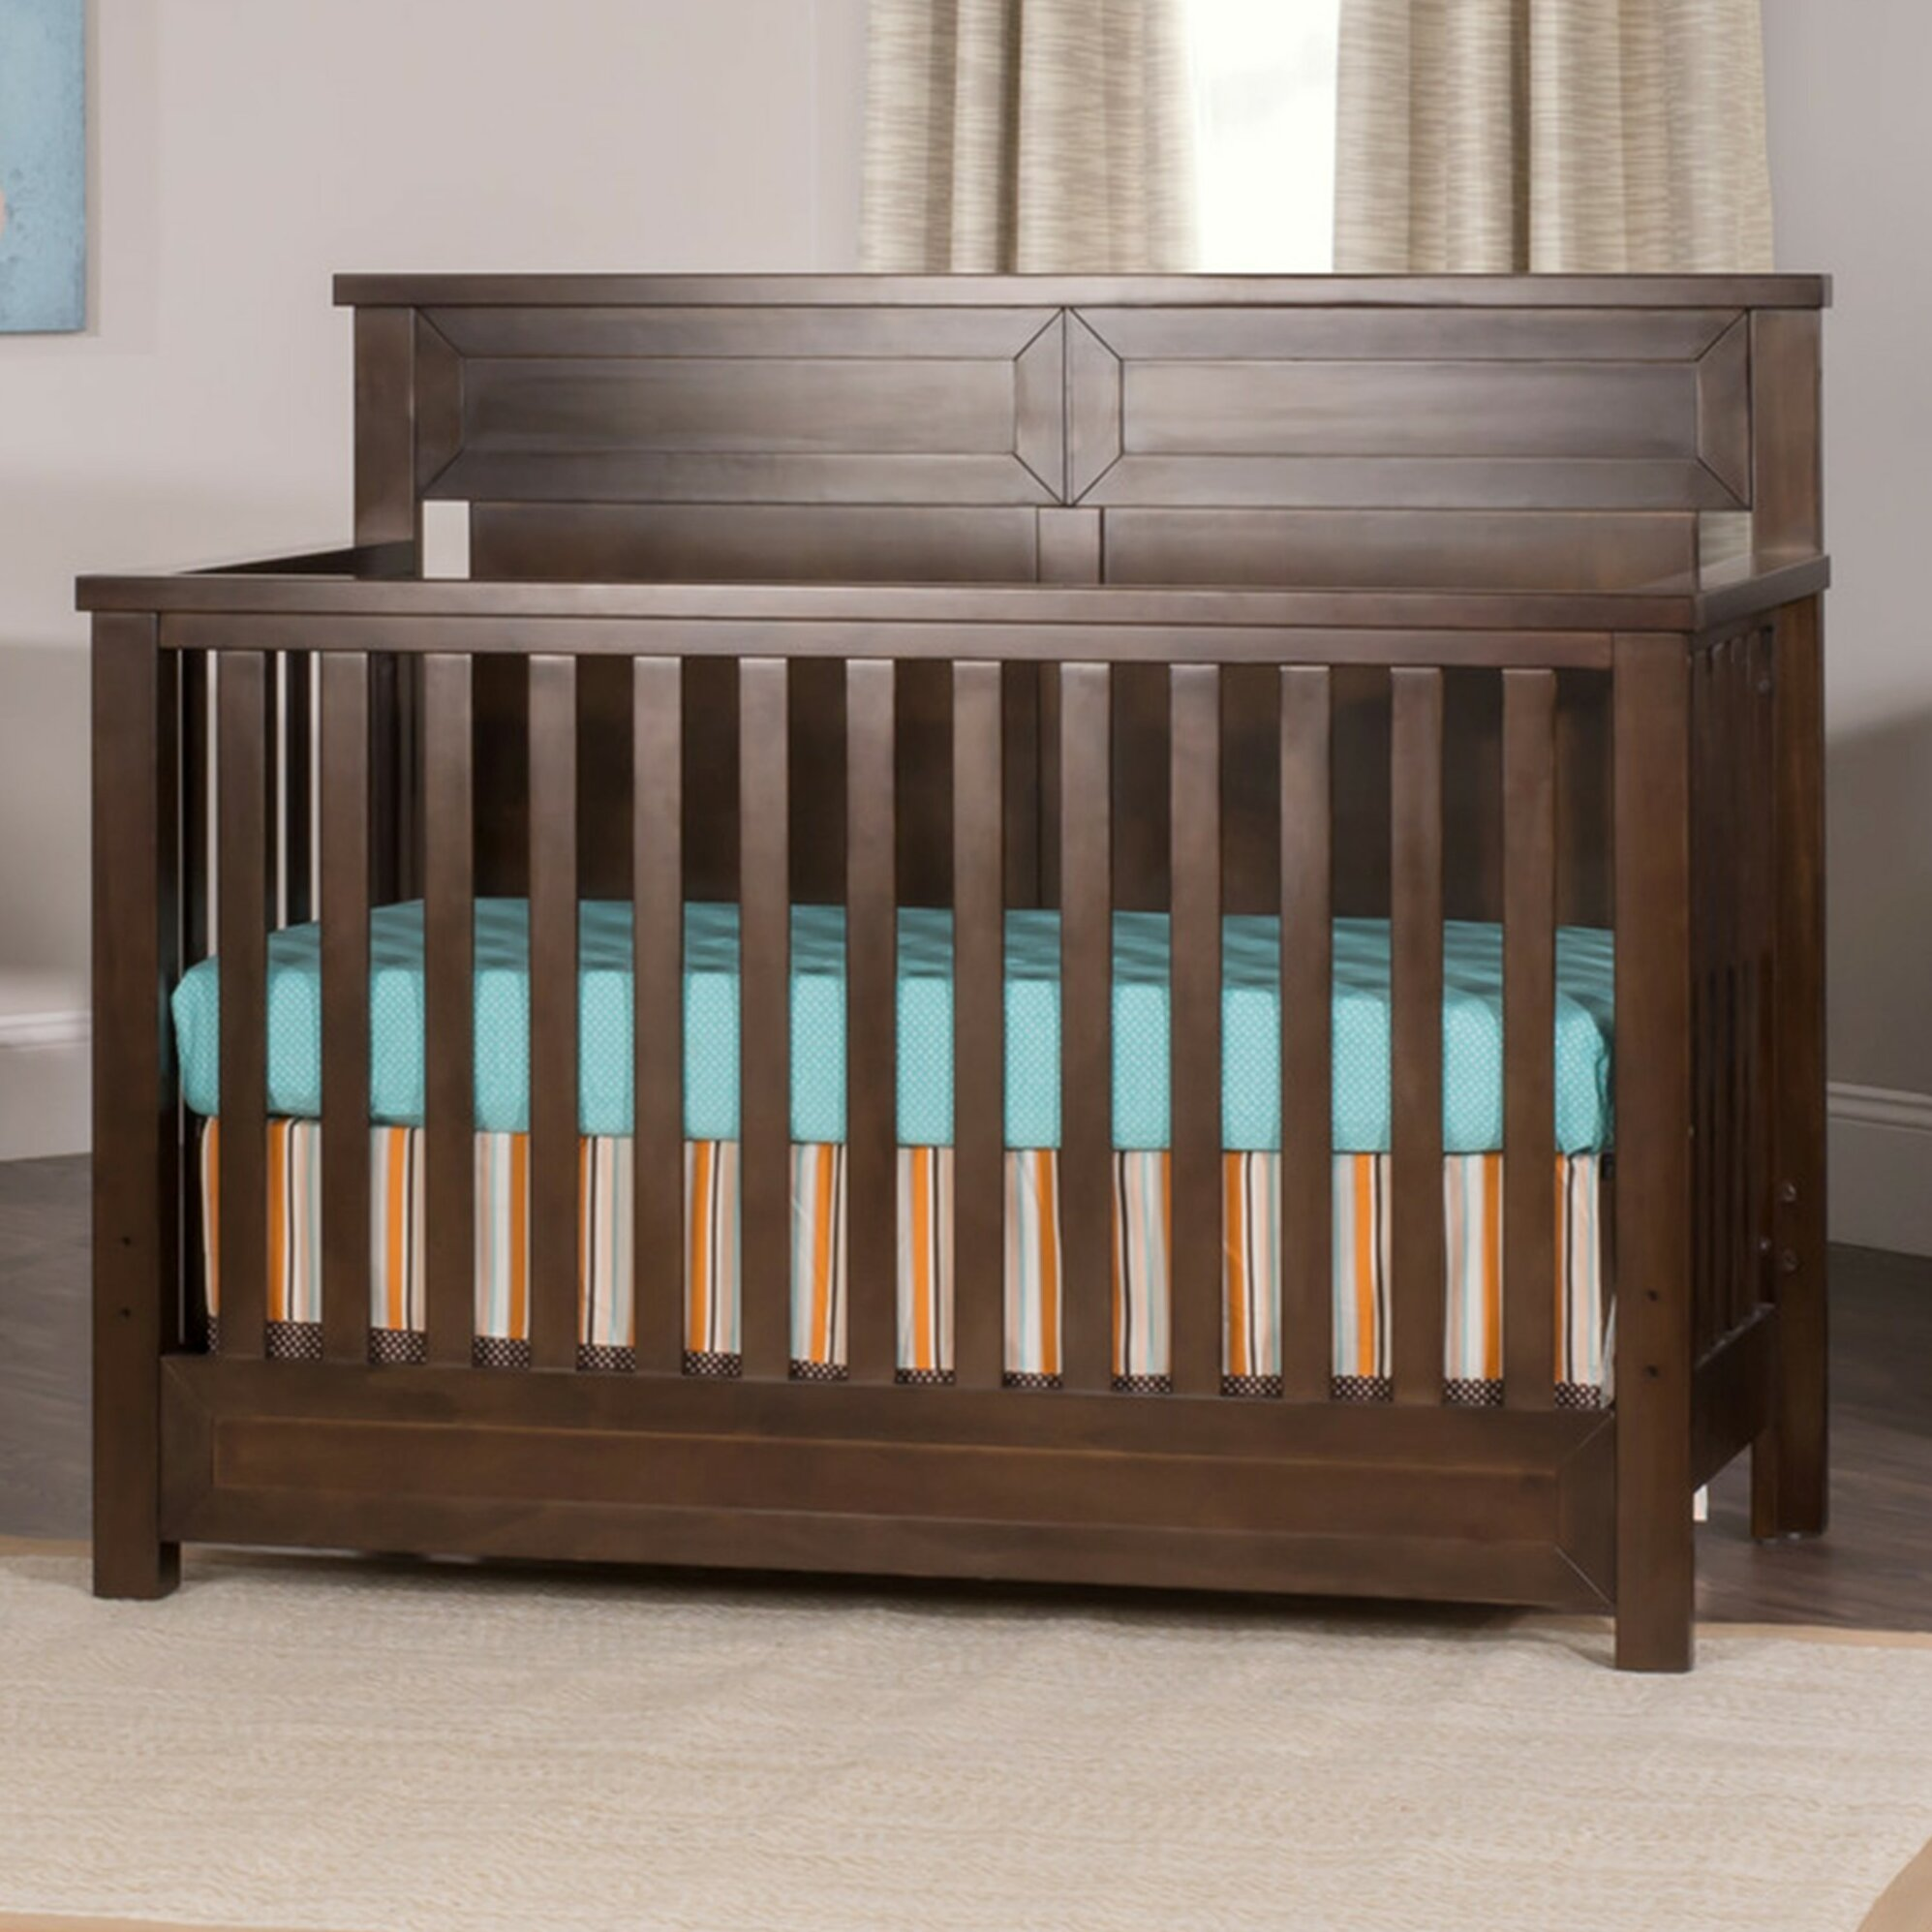 Child craft abbott 4 in 1 lifetime convertible crib for Child craft crib reviews